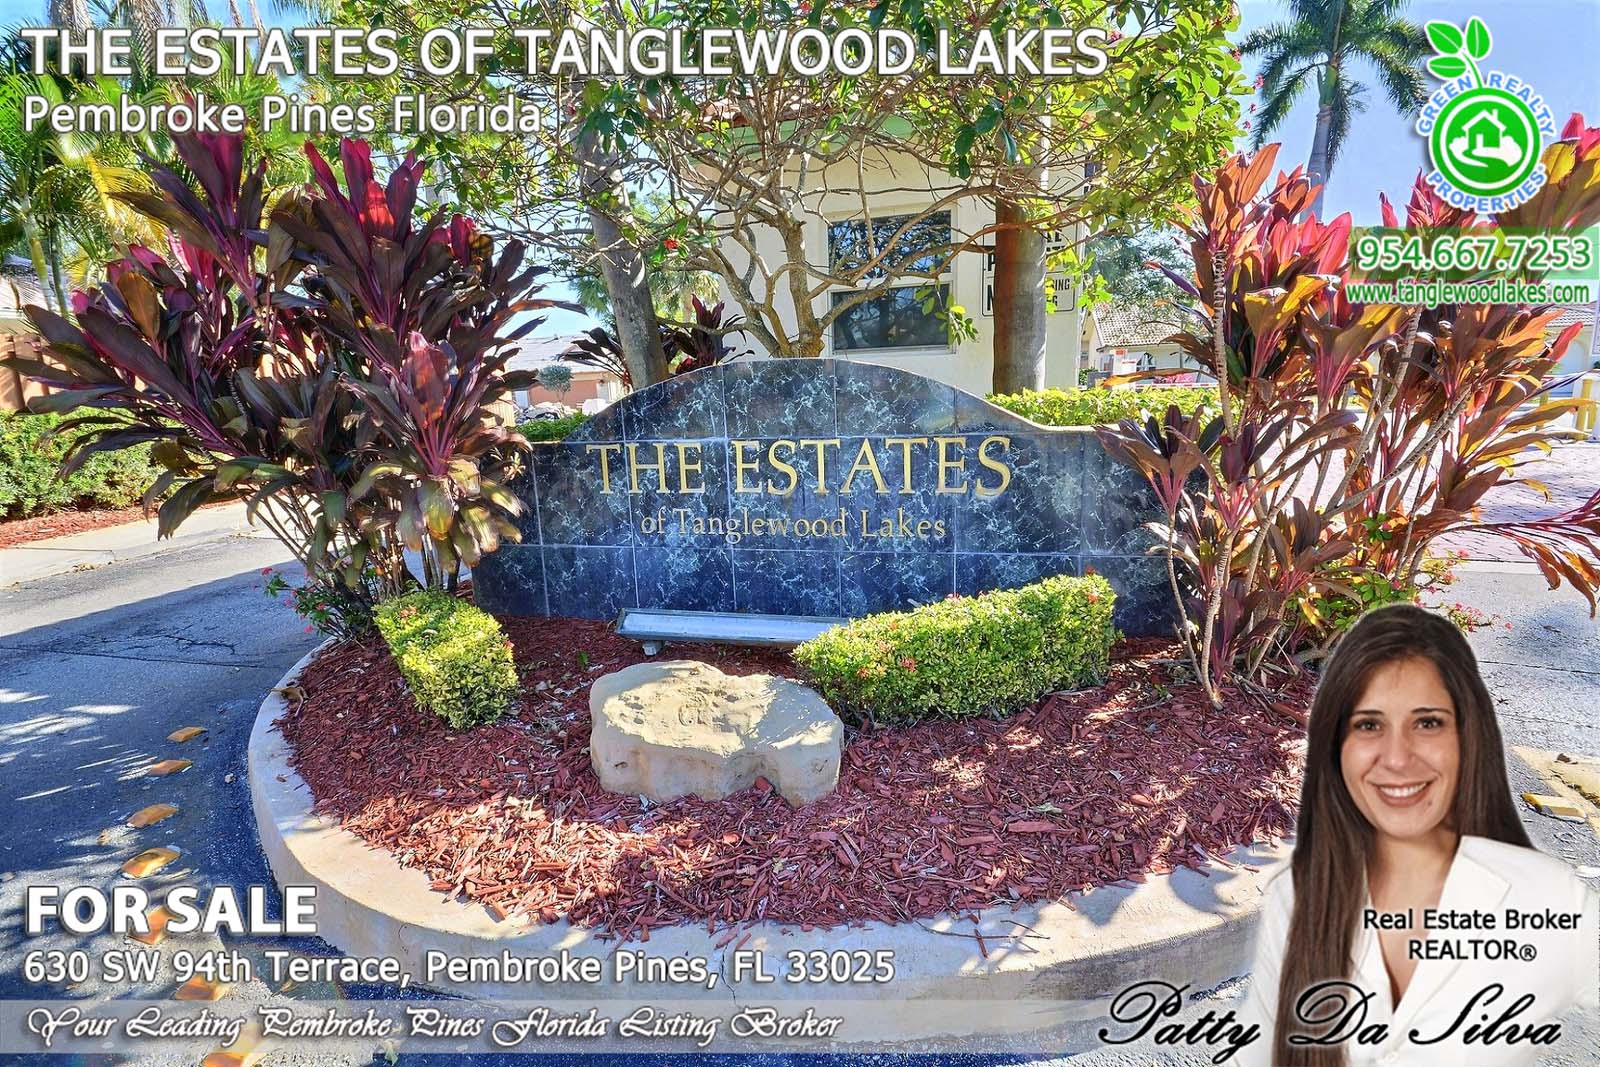 The Estates of Tanglewood Lakes Listing Broker Patty Da Silva